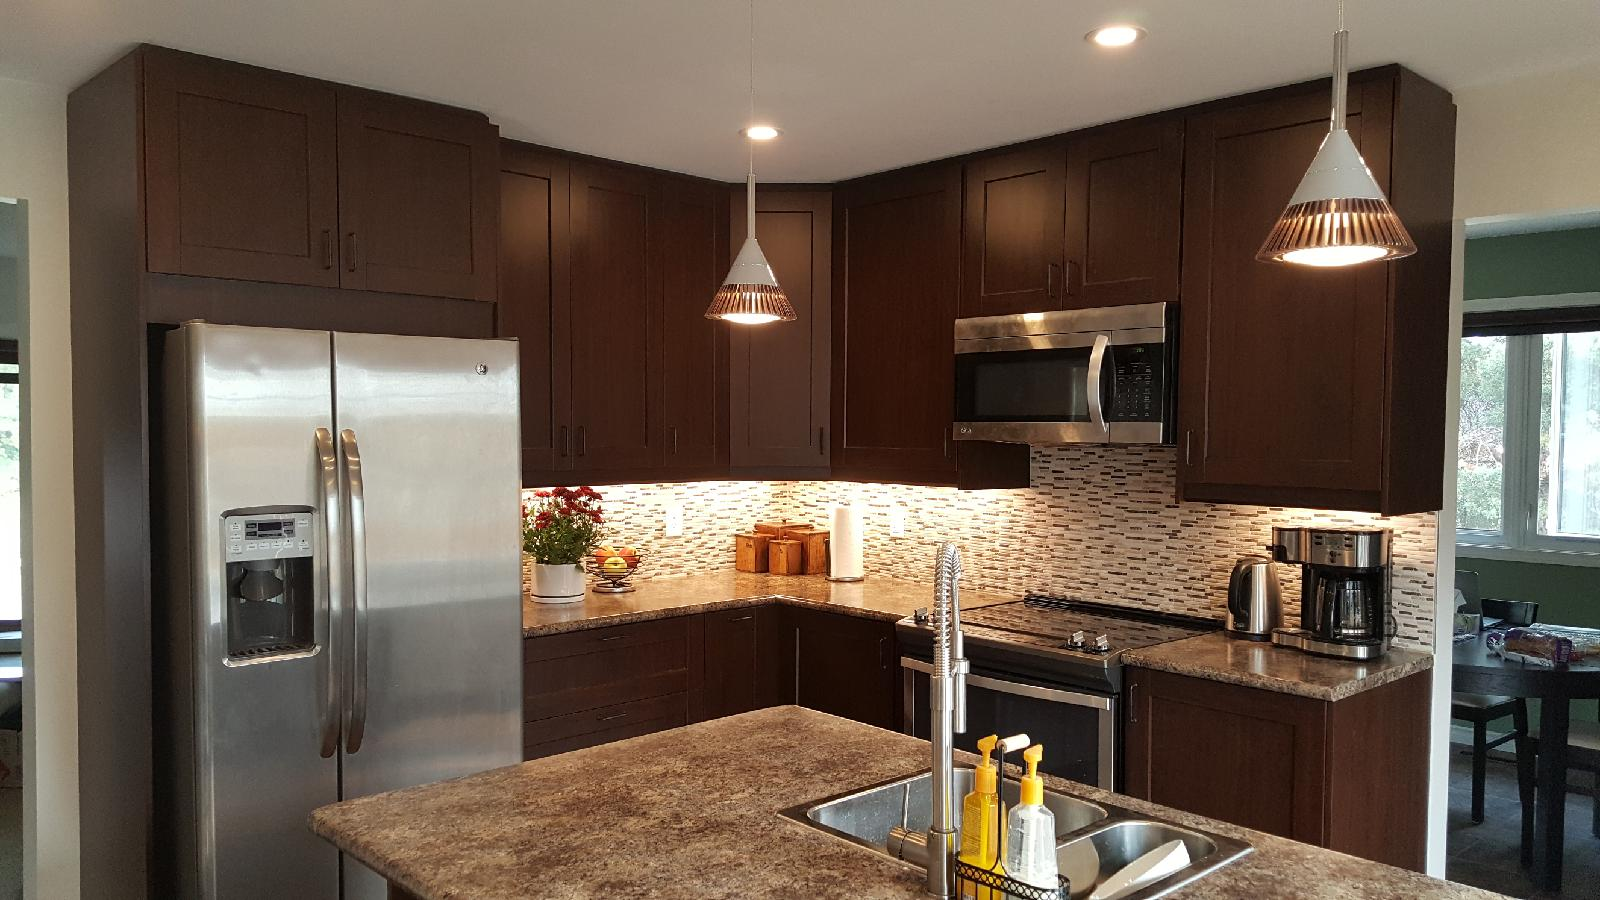 modern kitchen design with dark cabinets and granite style counter tops